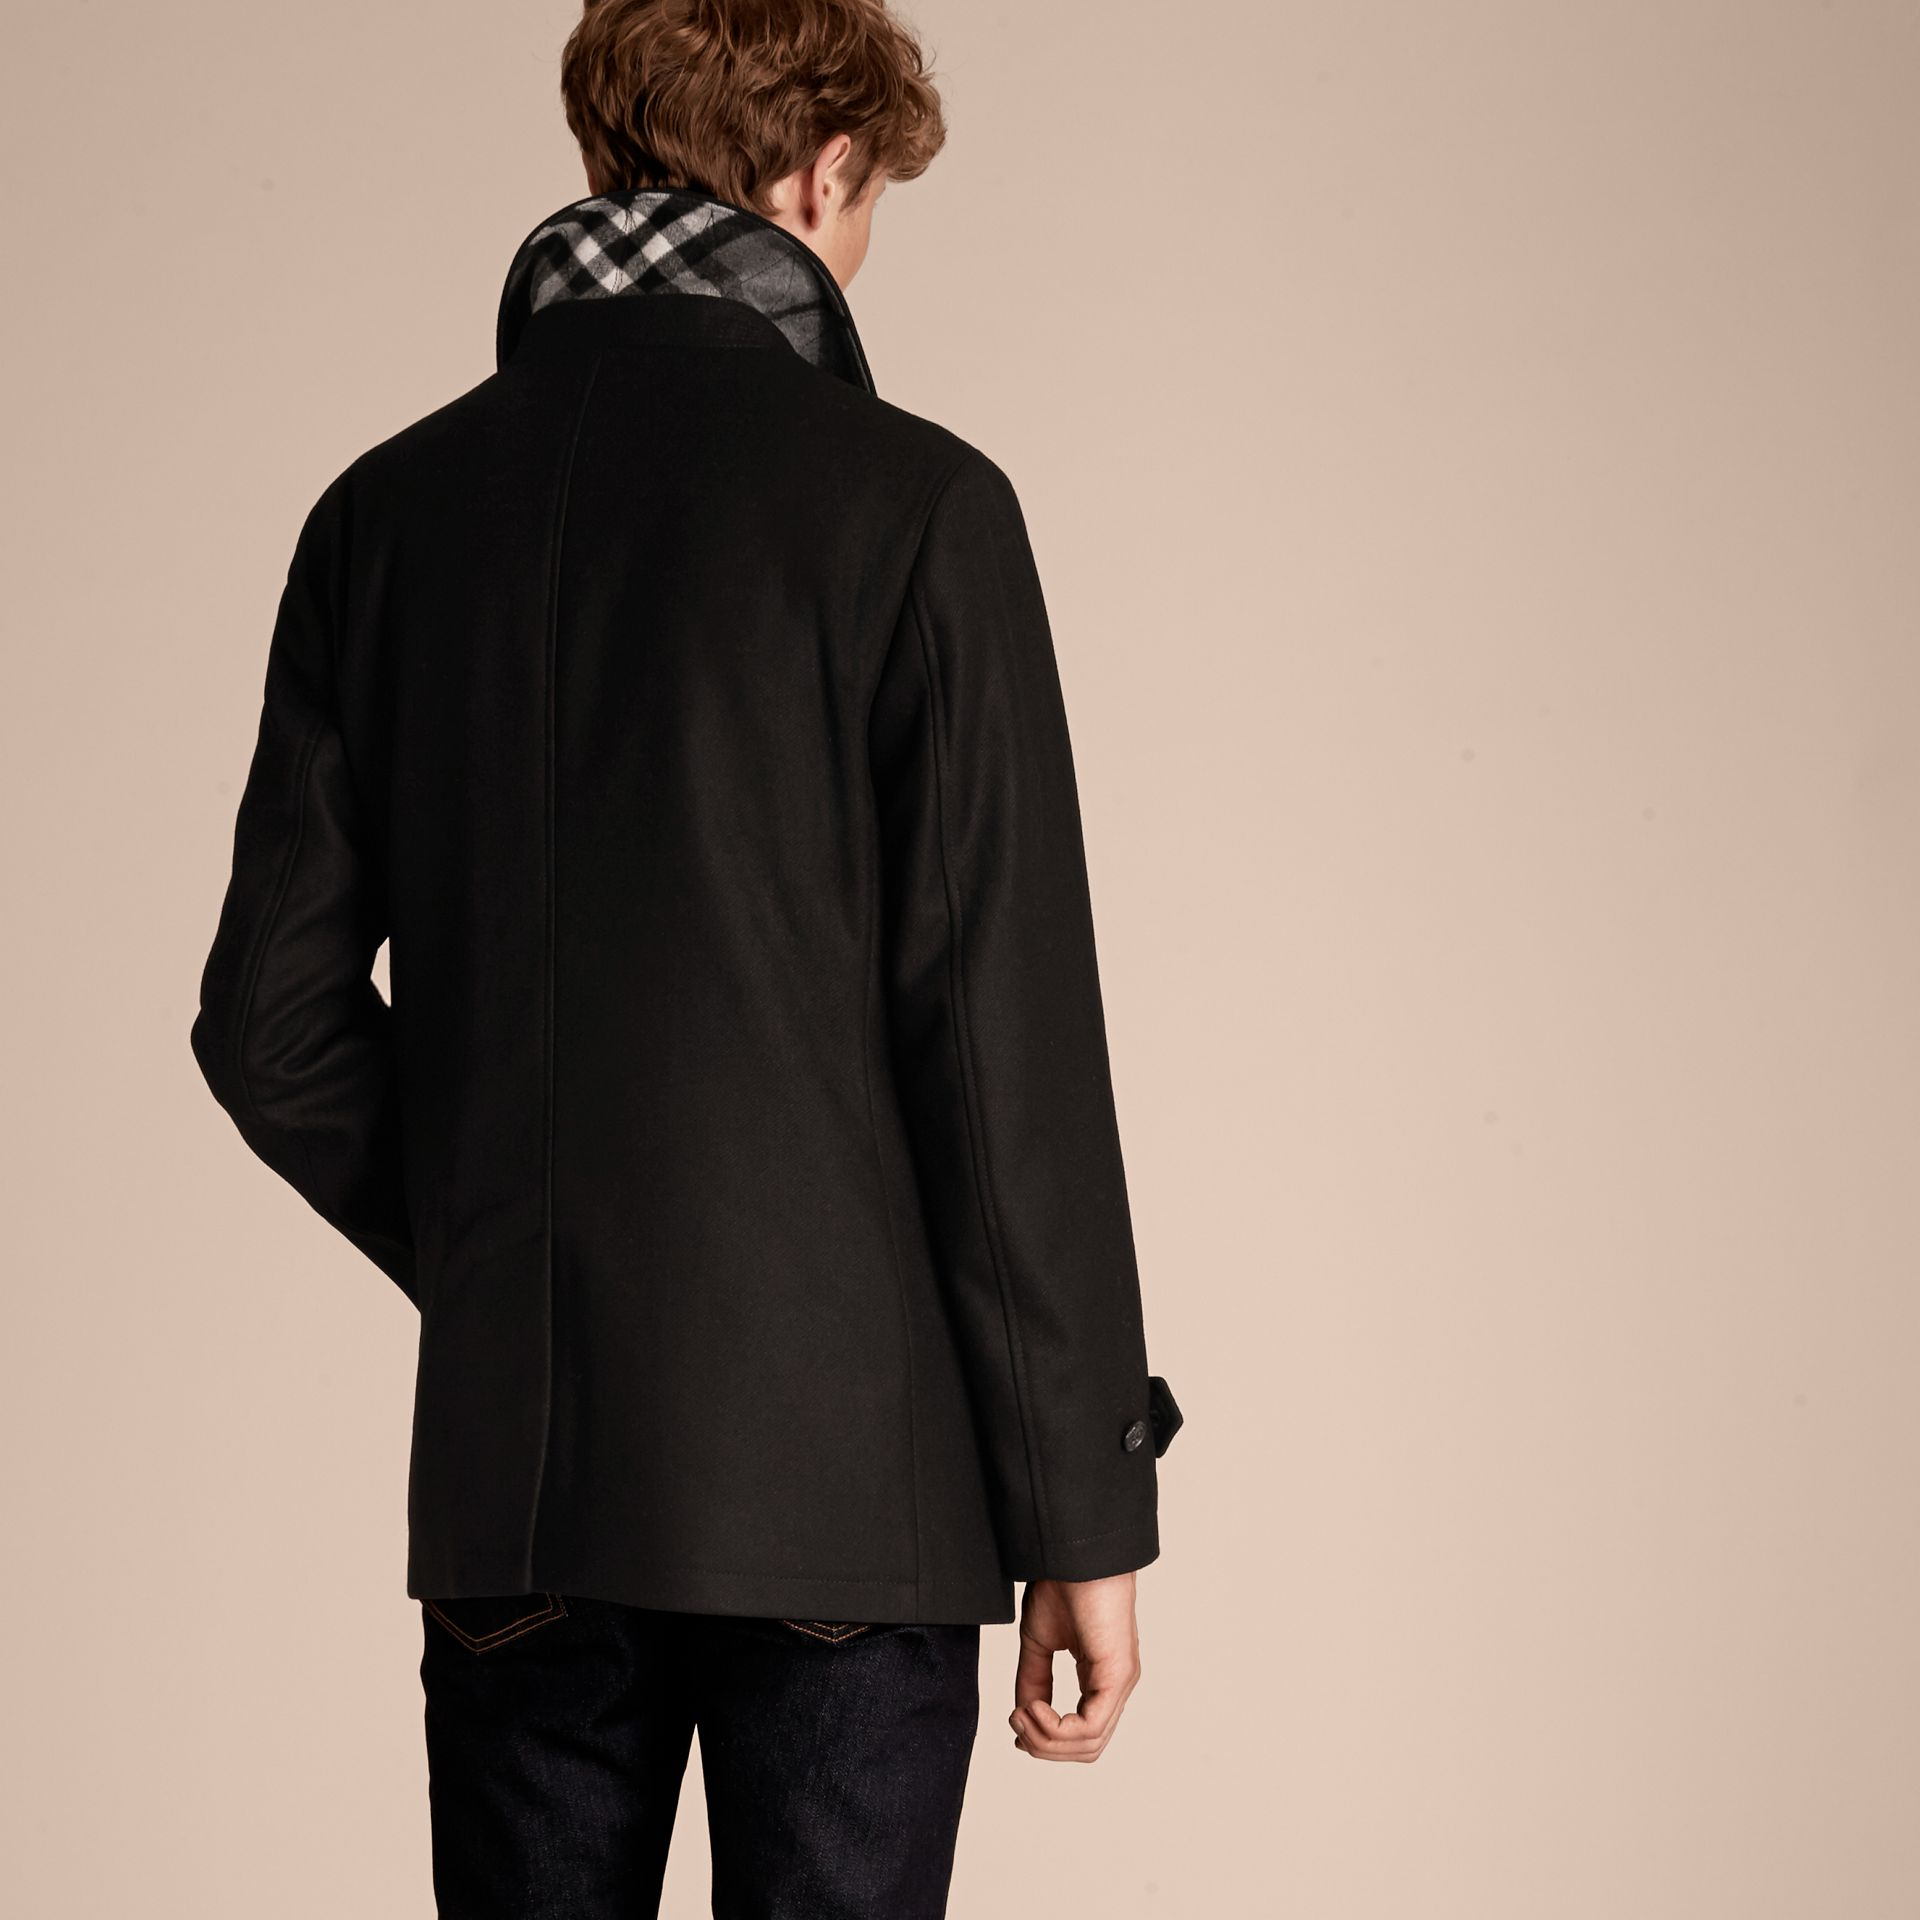 Black Wool Cashmere Blend Coat with Detachable Warmer - gallery image 3